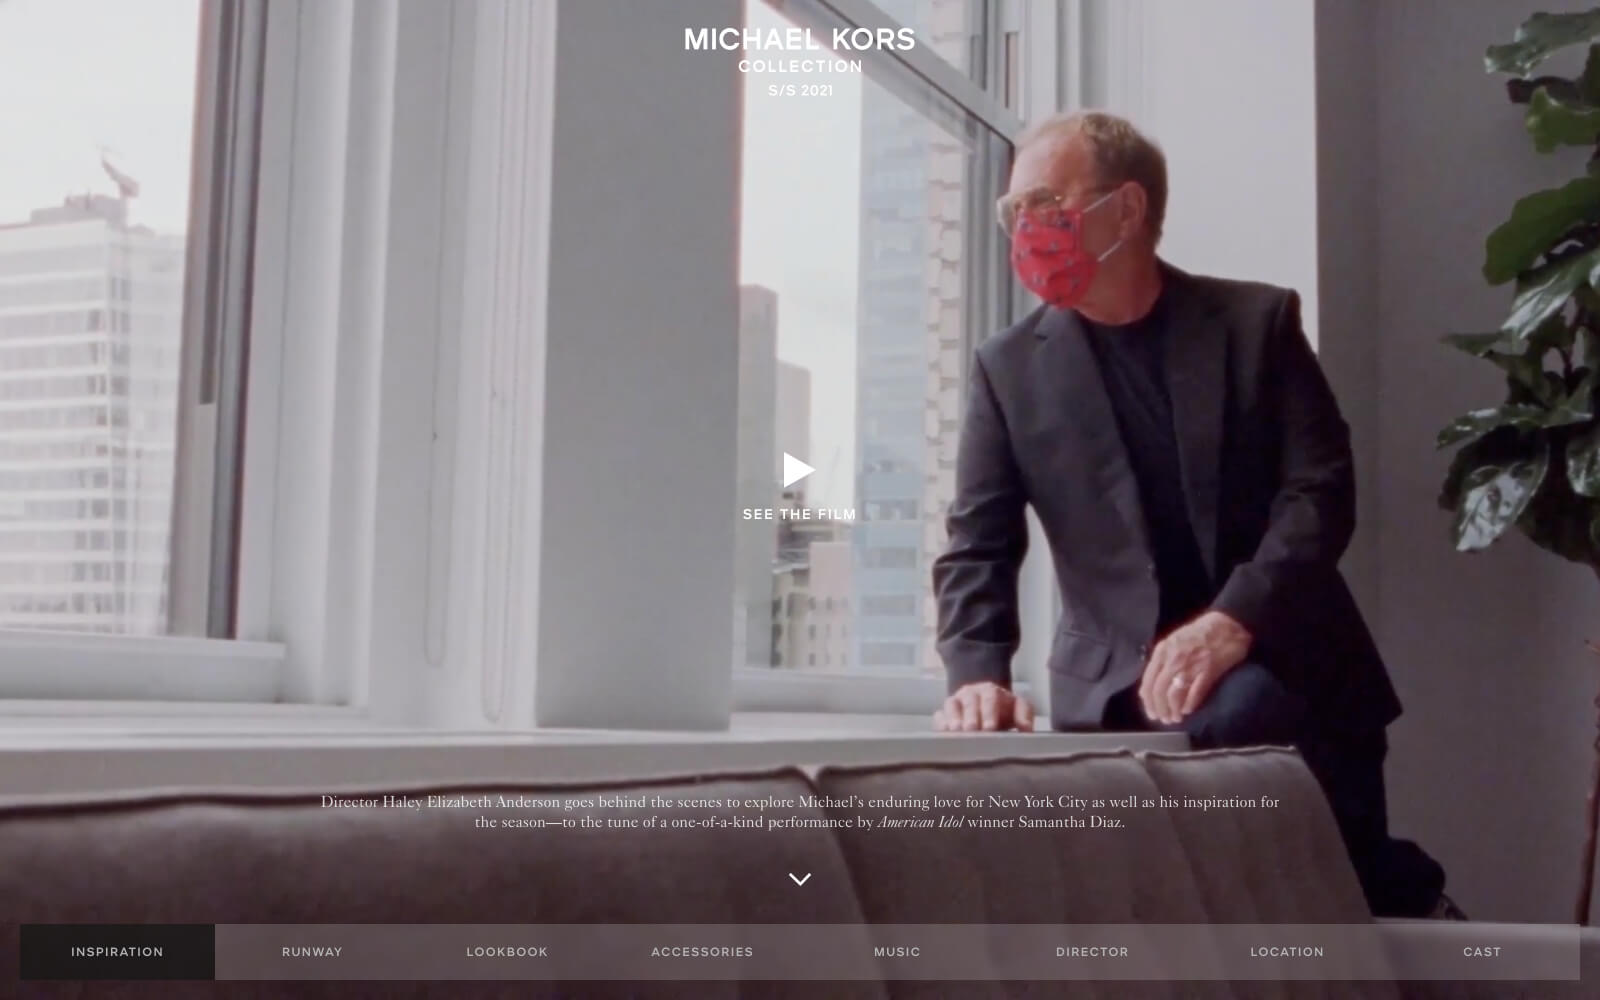 The Michael Kors Collection website features a minimal, fullscreen background image of a fashionable man wearing a red designer face mask glaring out of a build window towards the future.